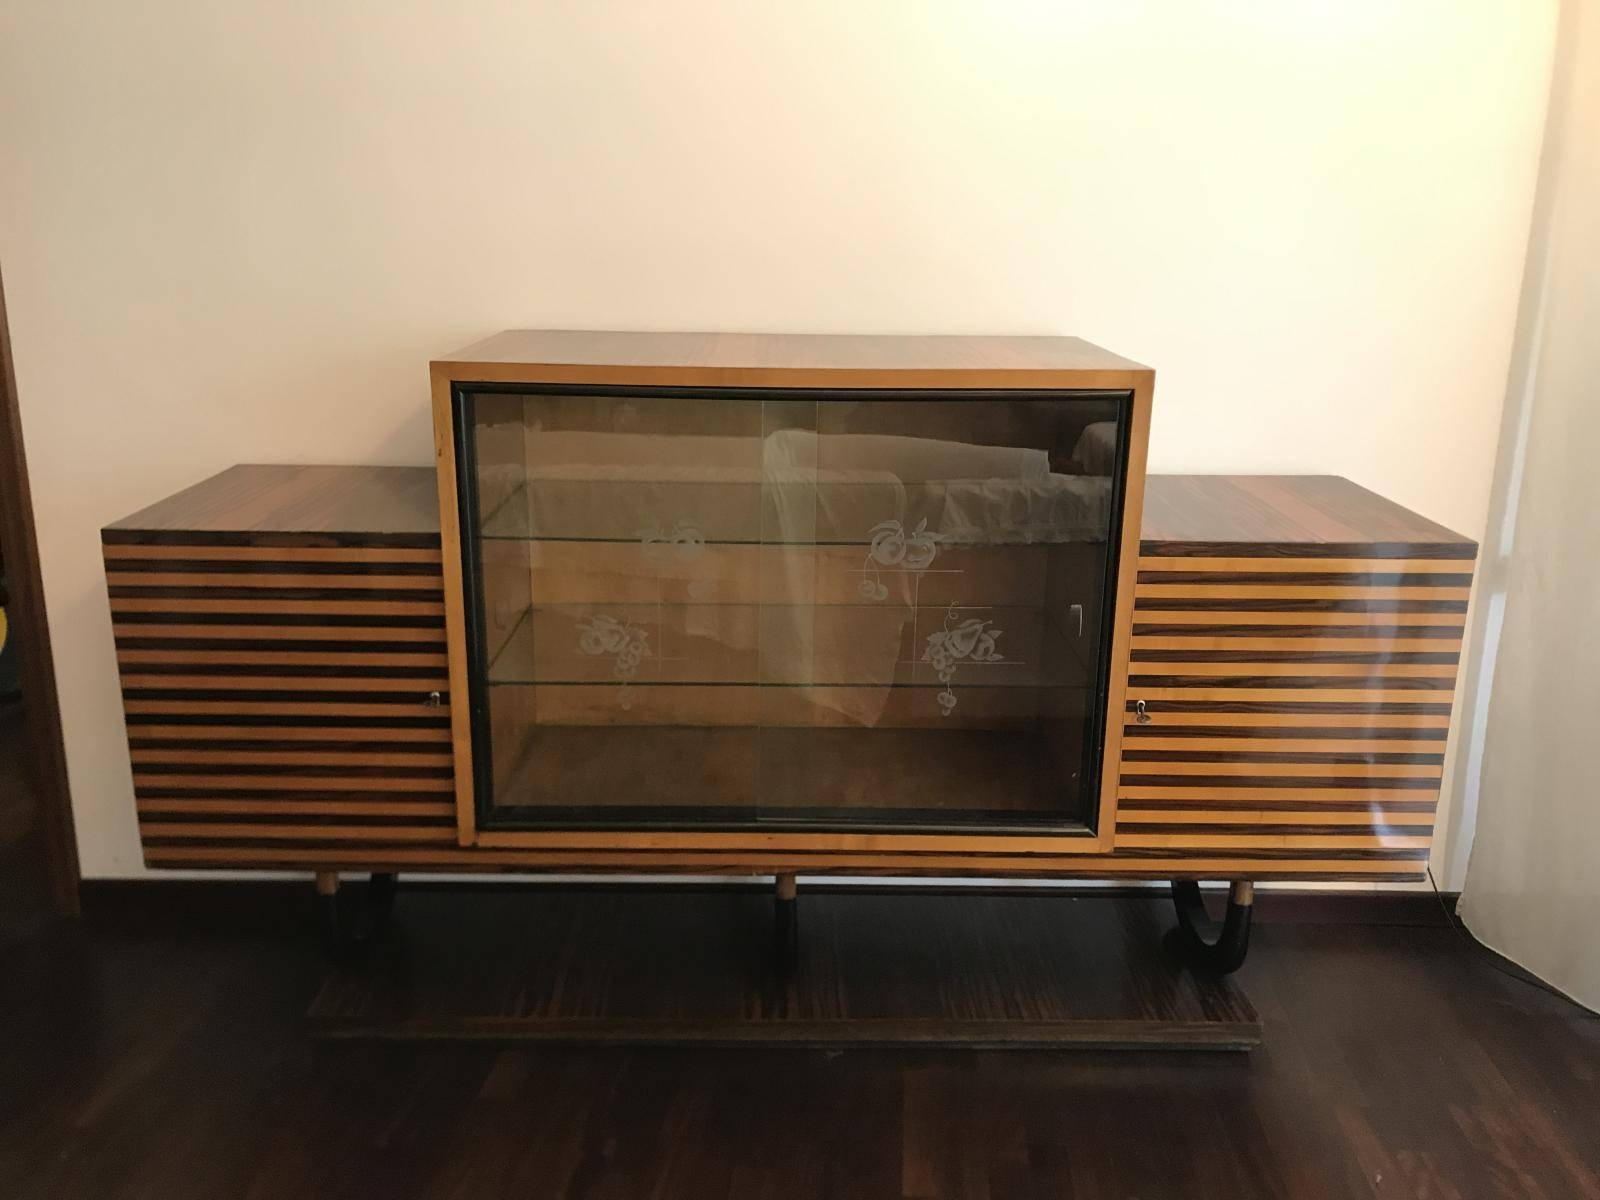 Italian Art Deco Sideboard In Walnut Burl, 1920S For Sale At Pamono Throughout Recent Art Deco Sideboards (#11 of 15)